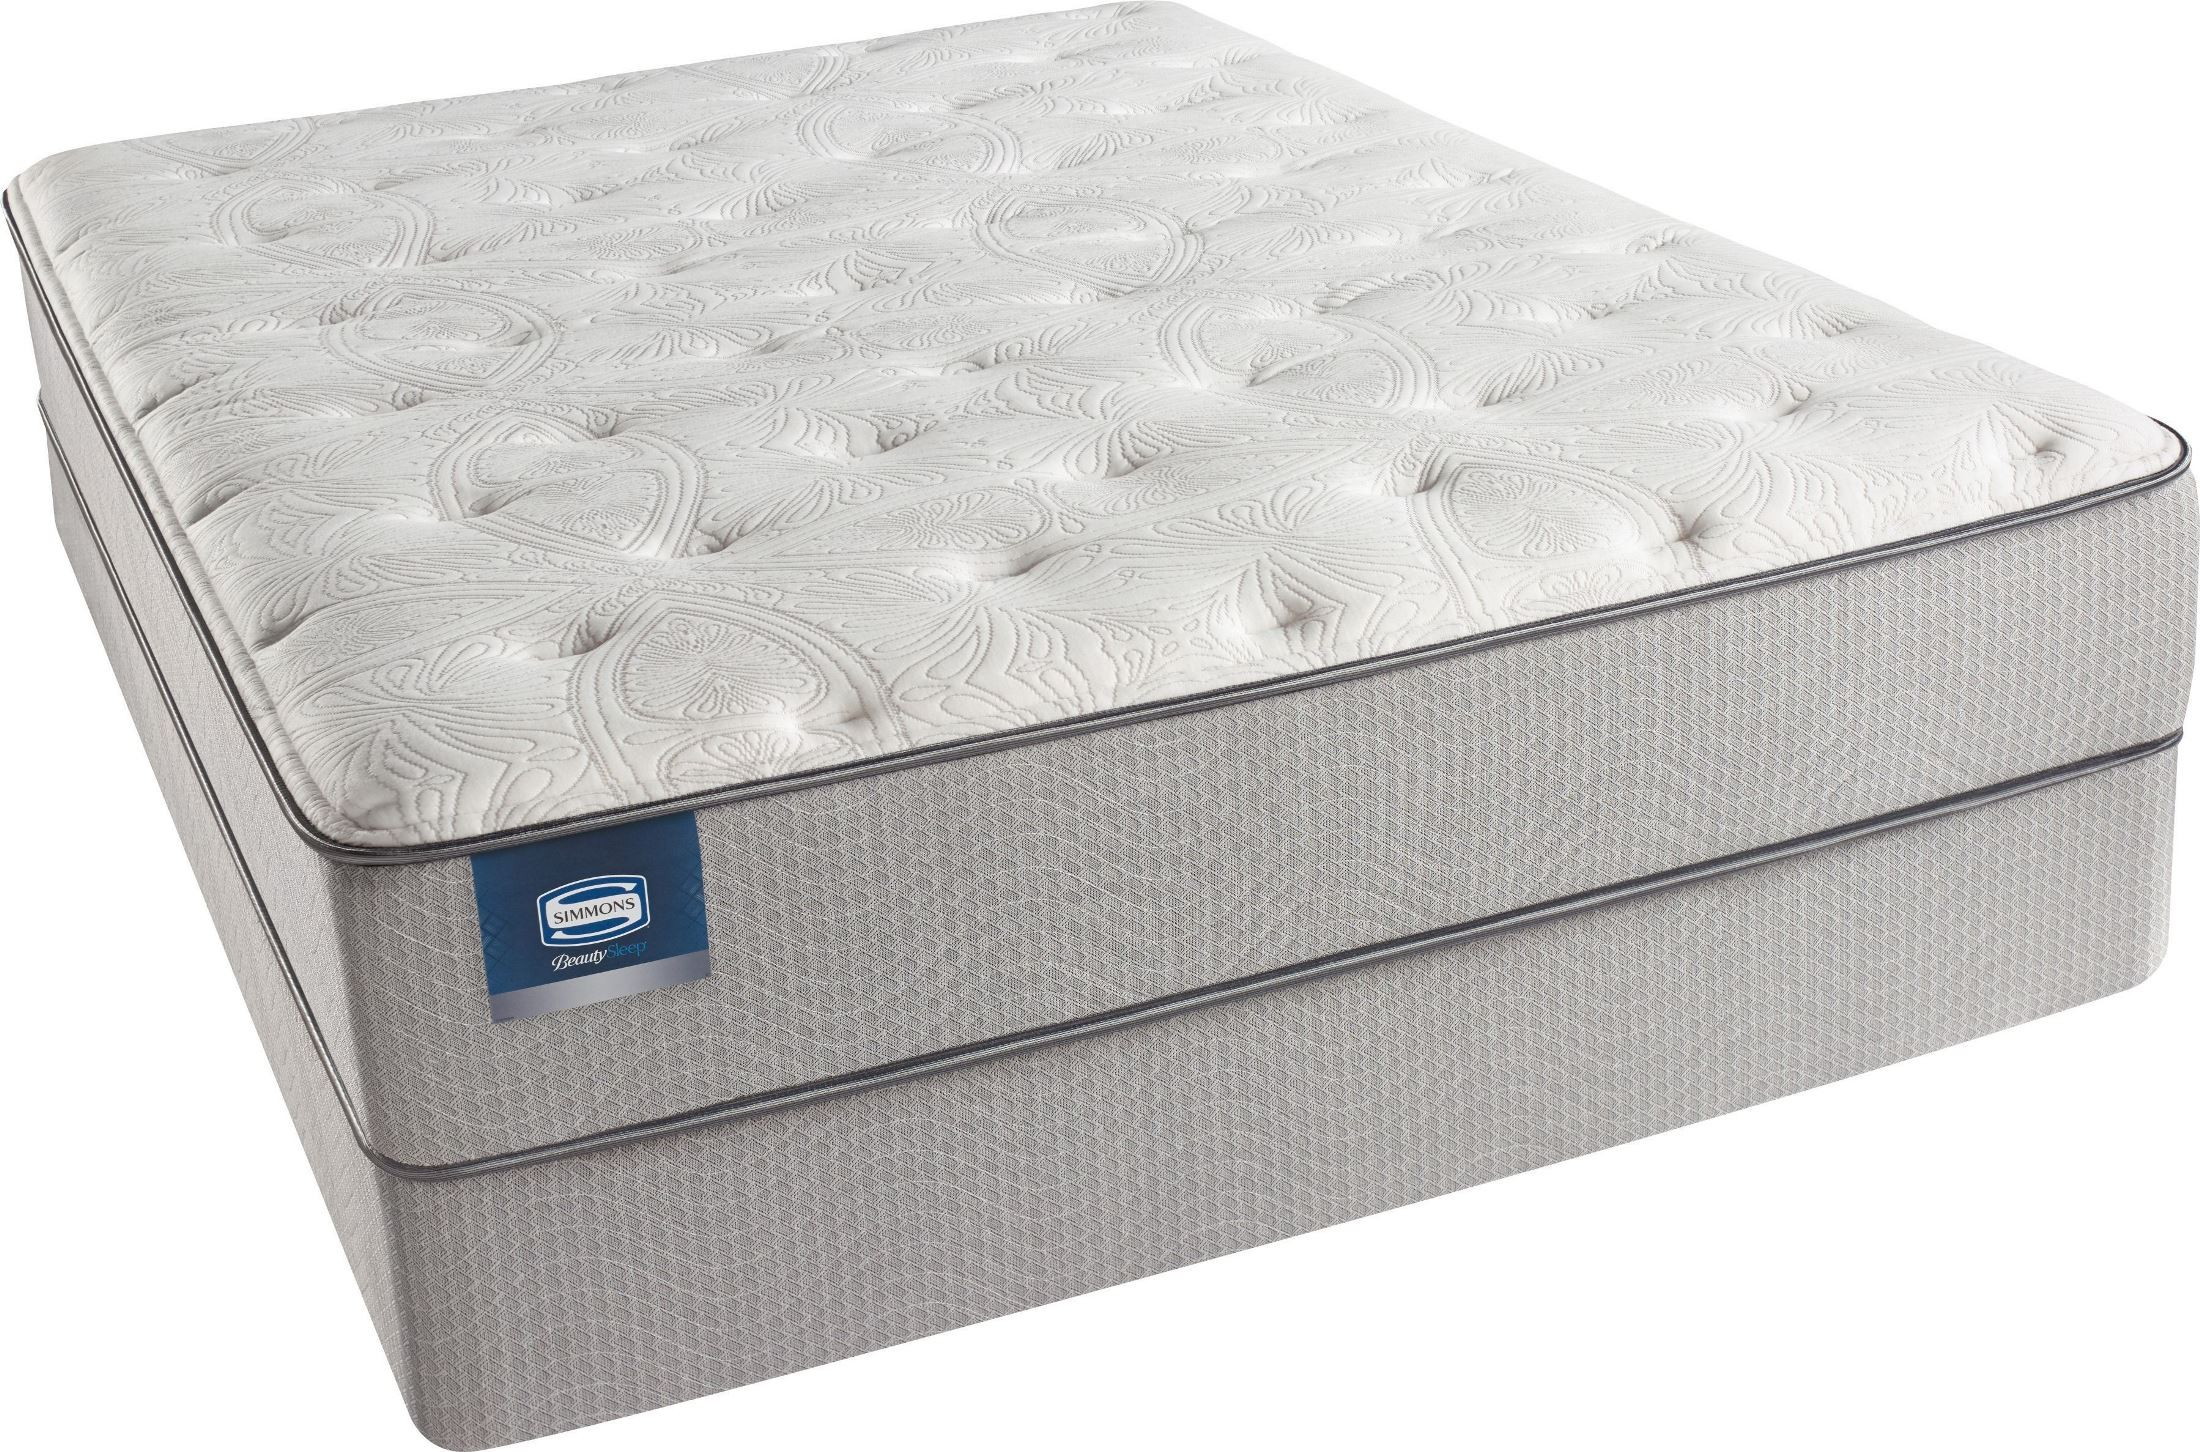 Beautysleep Areca Palm King Firm Mattress With Foundation Beautysleep Areca Palm Firm King With